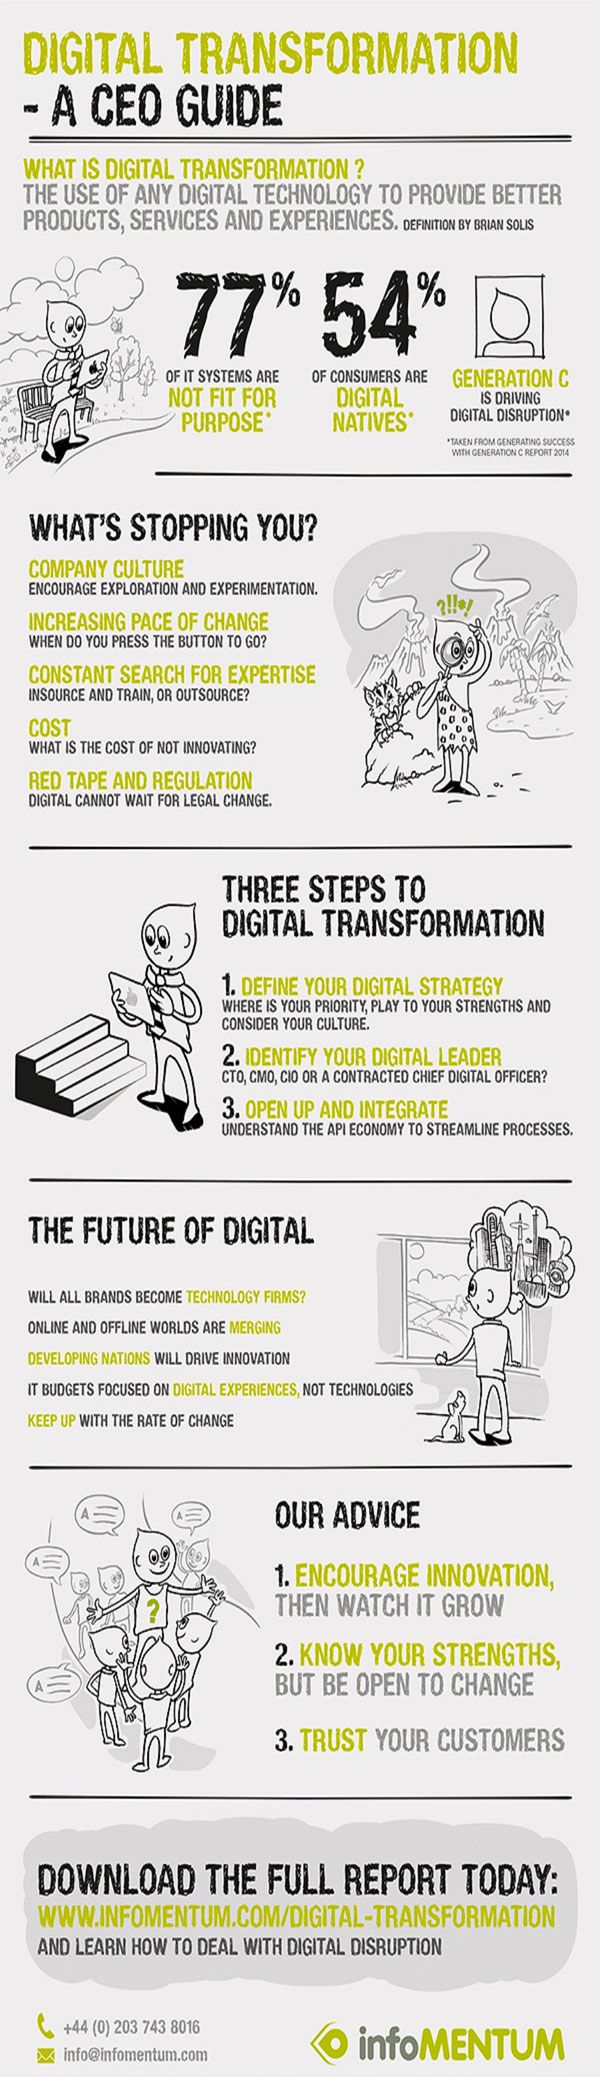 #DigitalTransformation - #Infographic published on May 2015 by #GetElastic